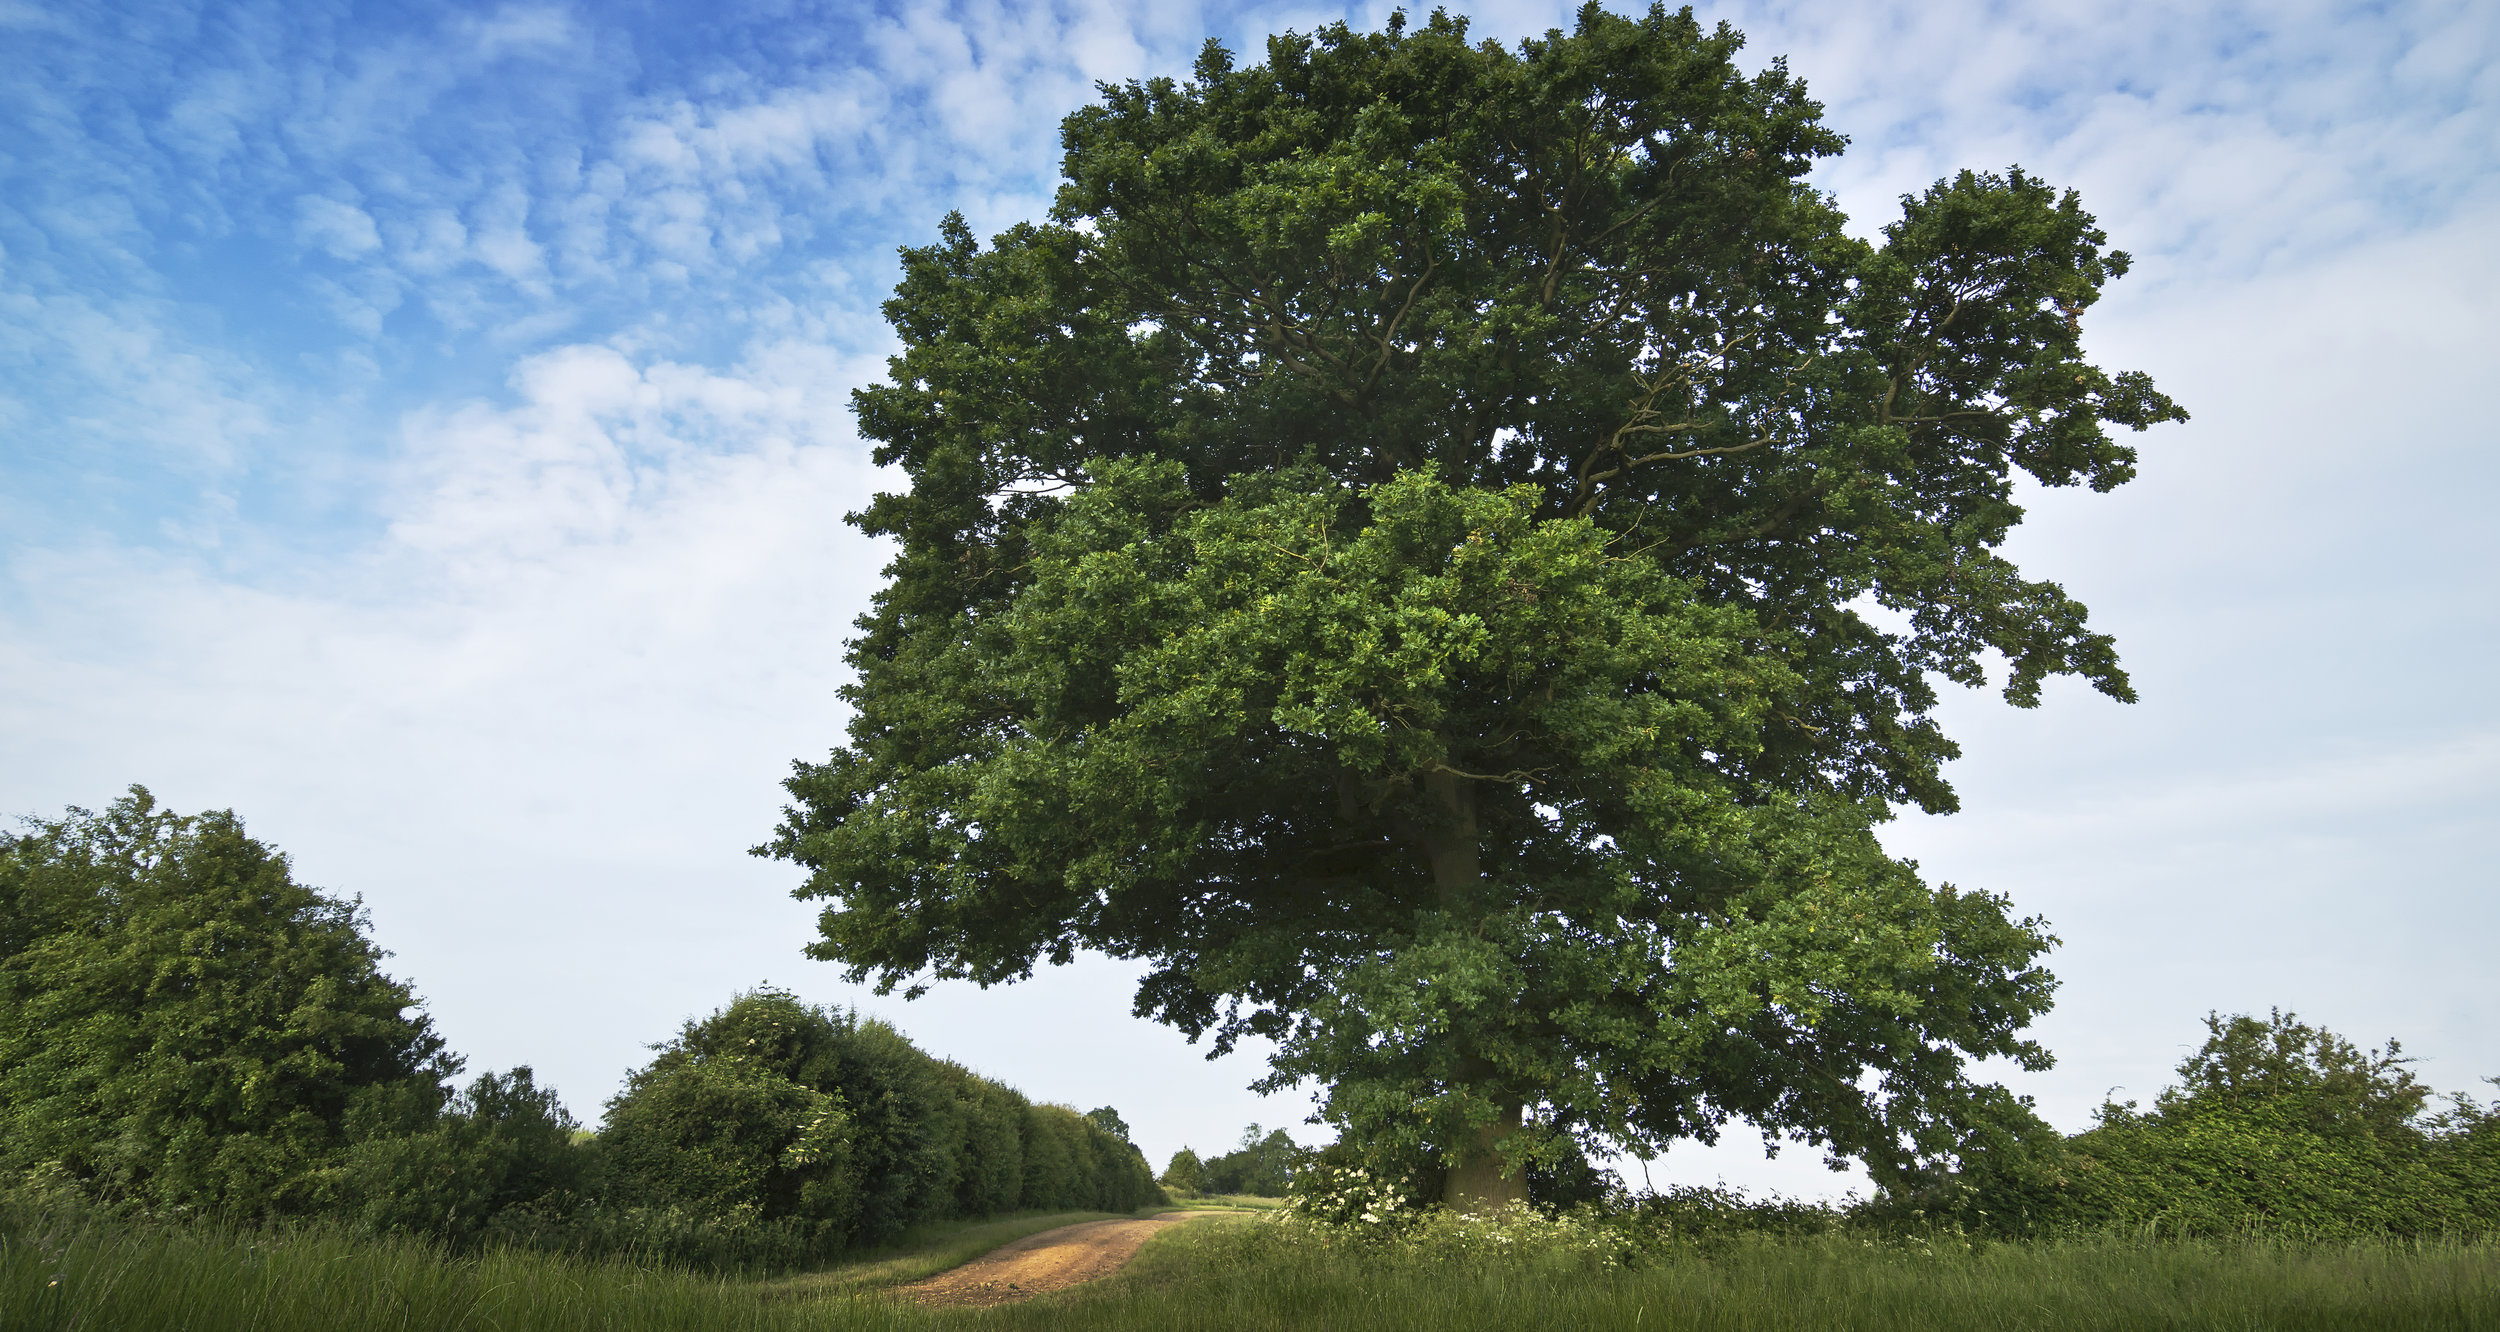 """photograph: """" English oak / Quercus robur """" by  AJ Cann  licensed under  CC BY-SA 2.0  / cropped from original"""